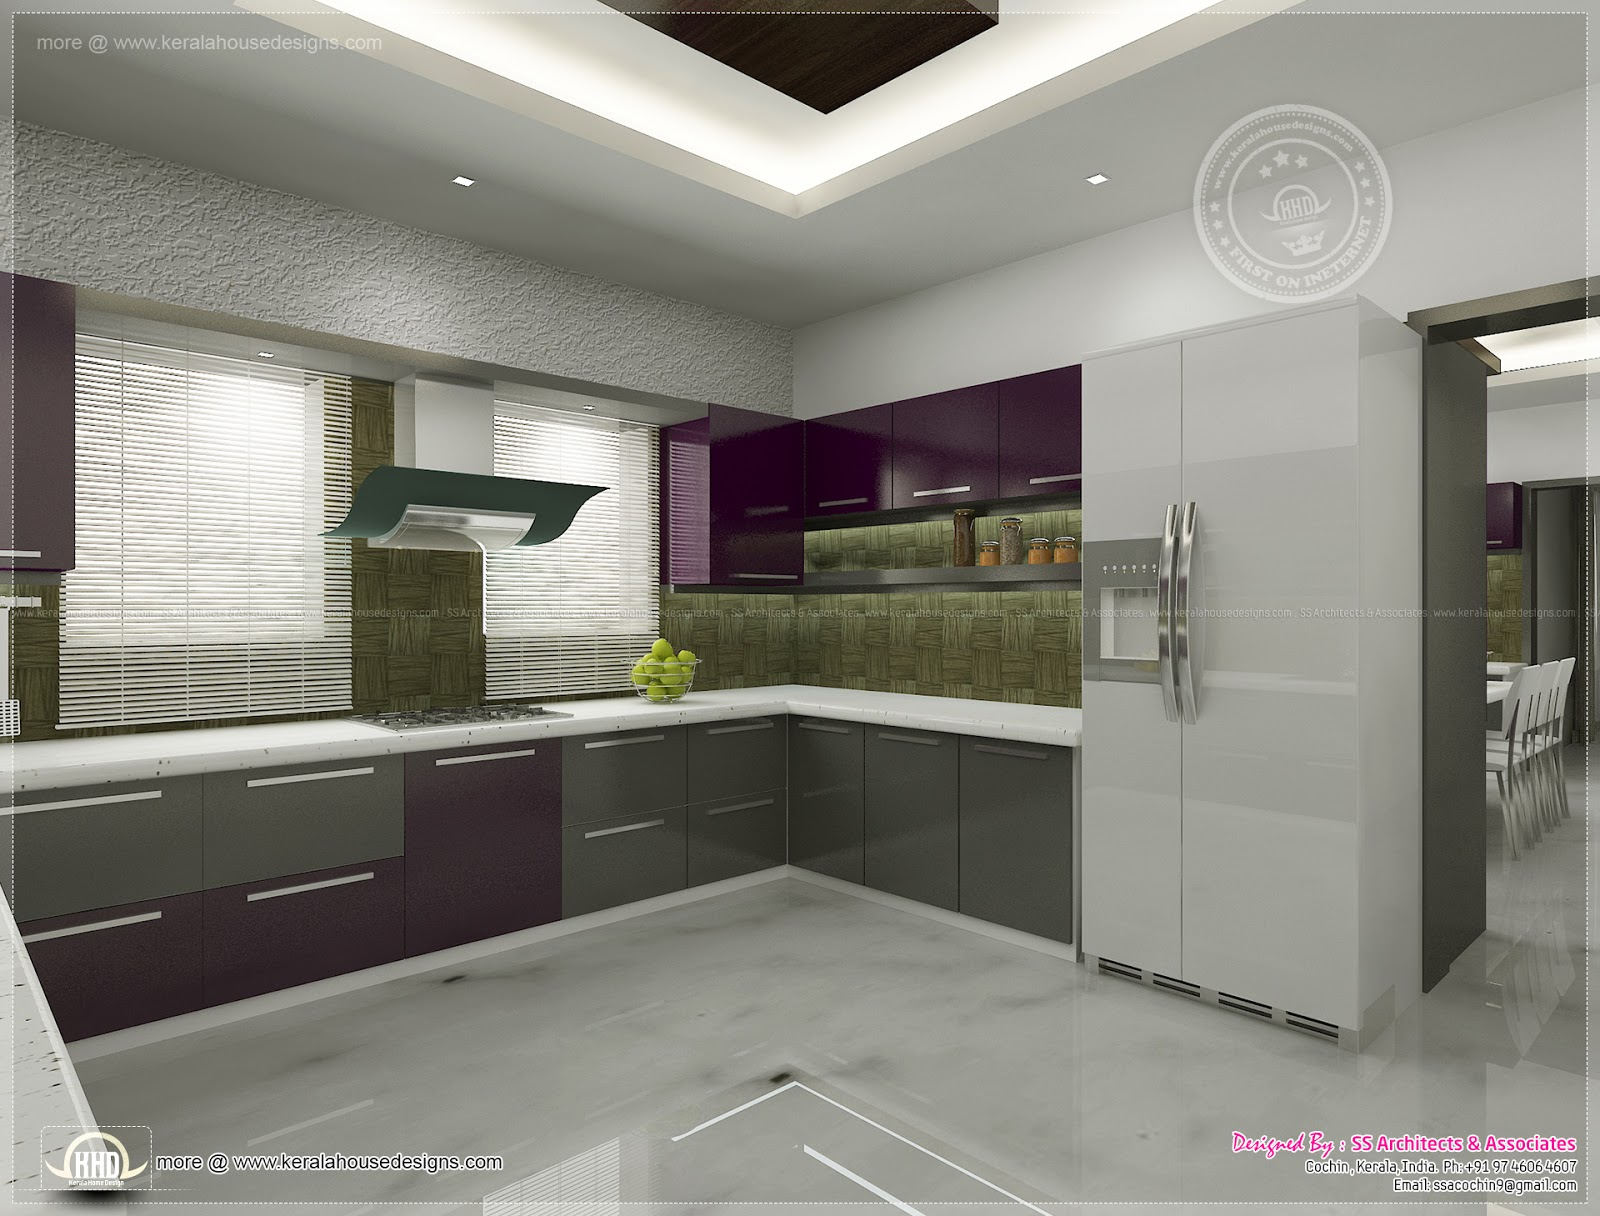 Kitchen interior views by ss architects cochin kerala home design and floor plans Interior design ideas for kerala houses